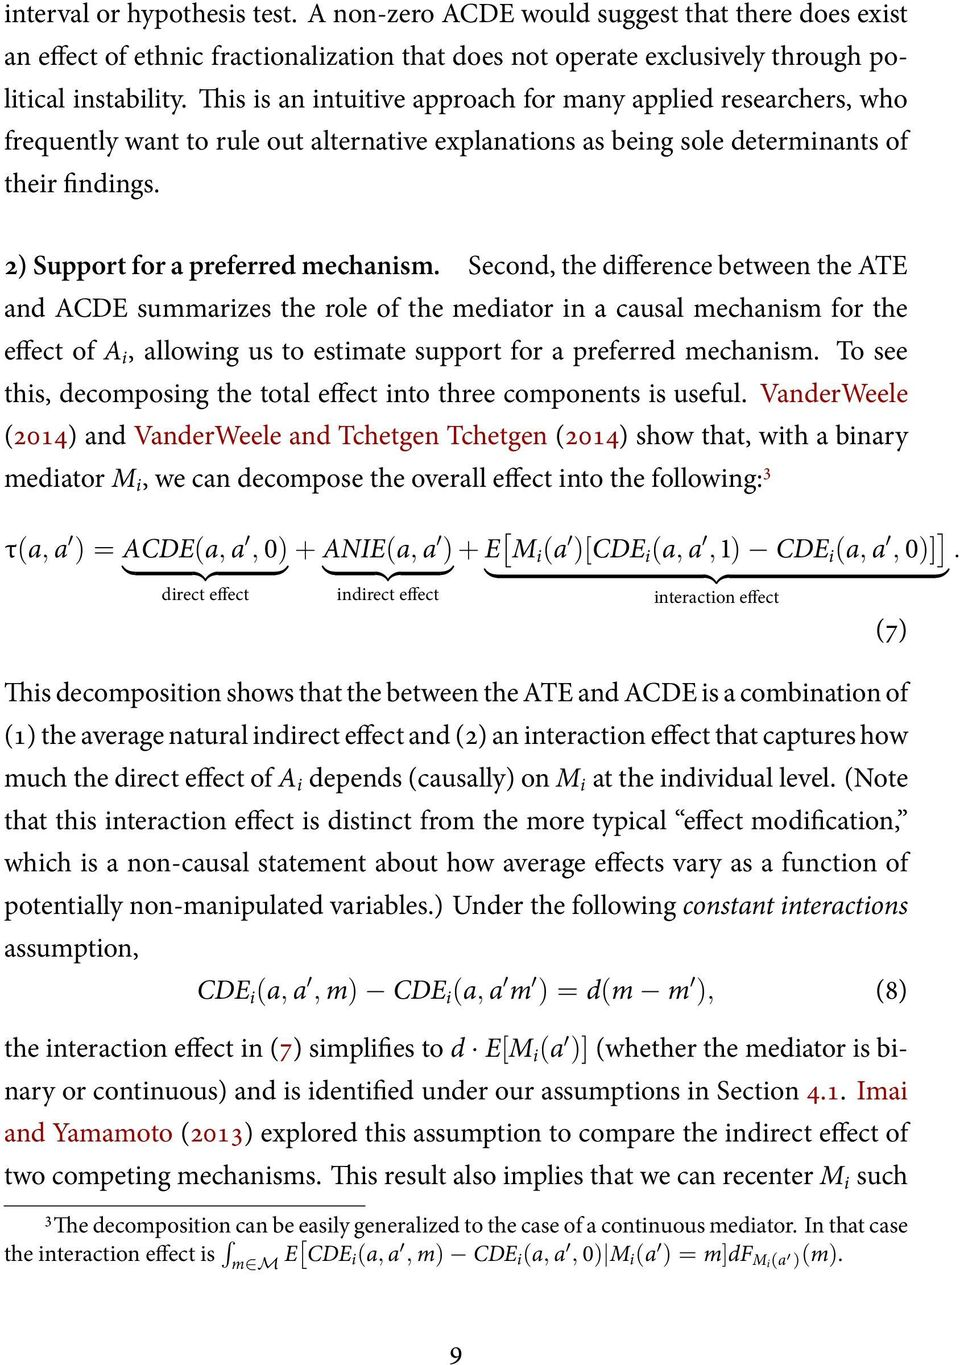 Second, the difference between the ATE and ACDE summarizes the role of the mediator in a causal mechanism for the effect of A i, allowing us to estimate support for a preferred mechanism.